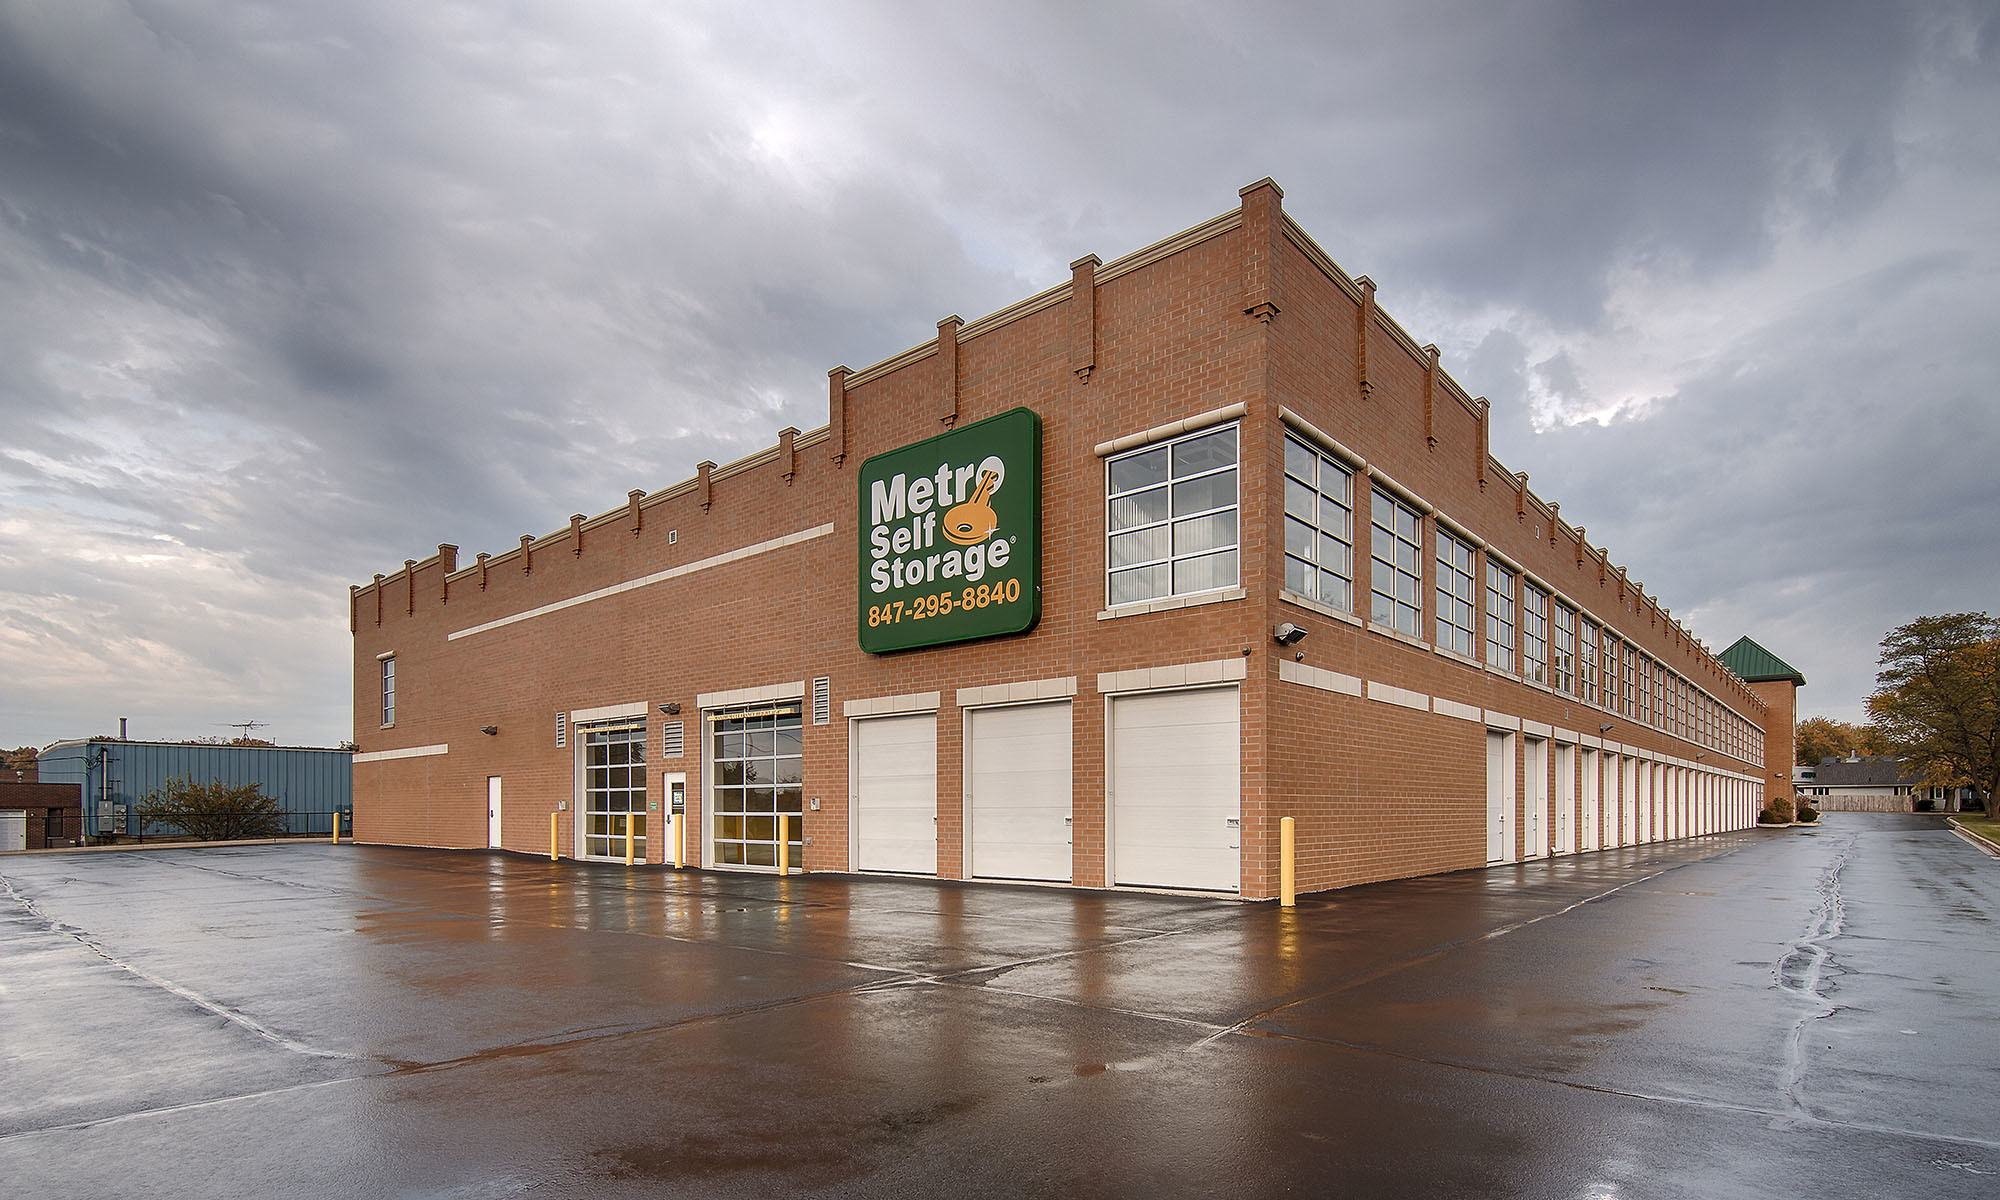 Metro Self Storage in Lake Bluff, IL